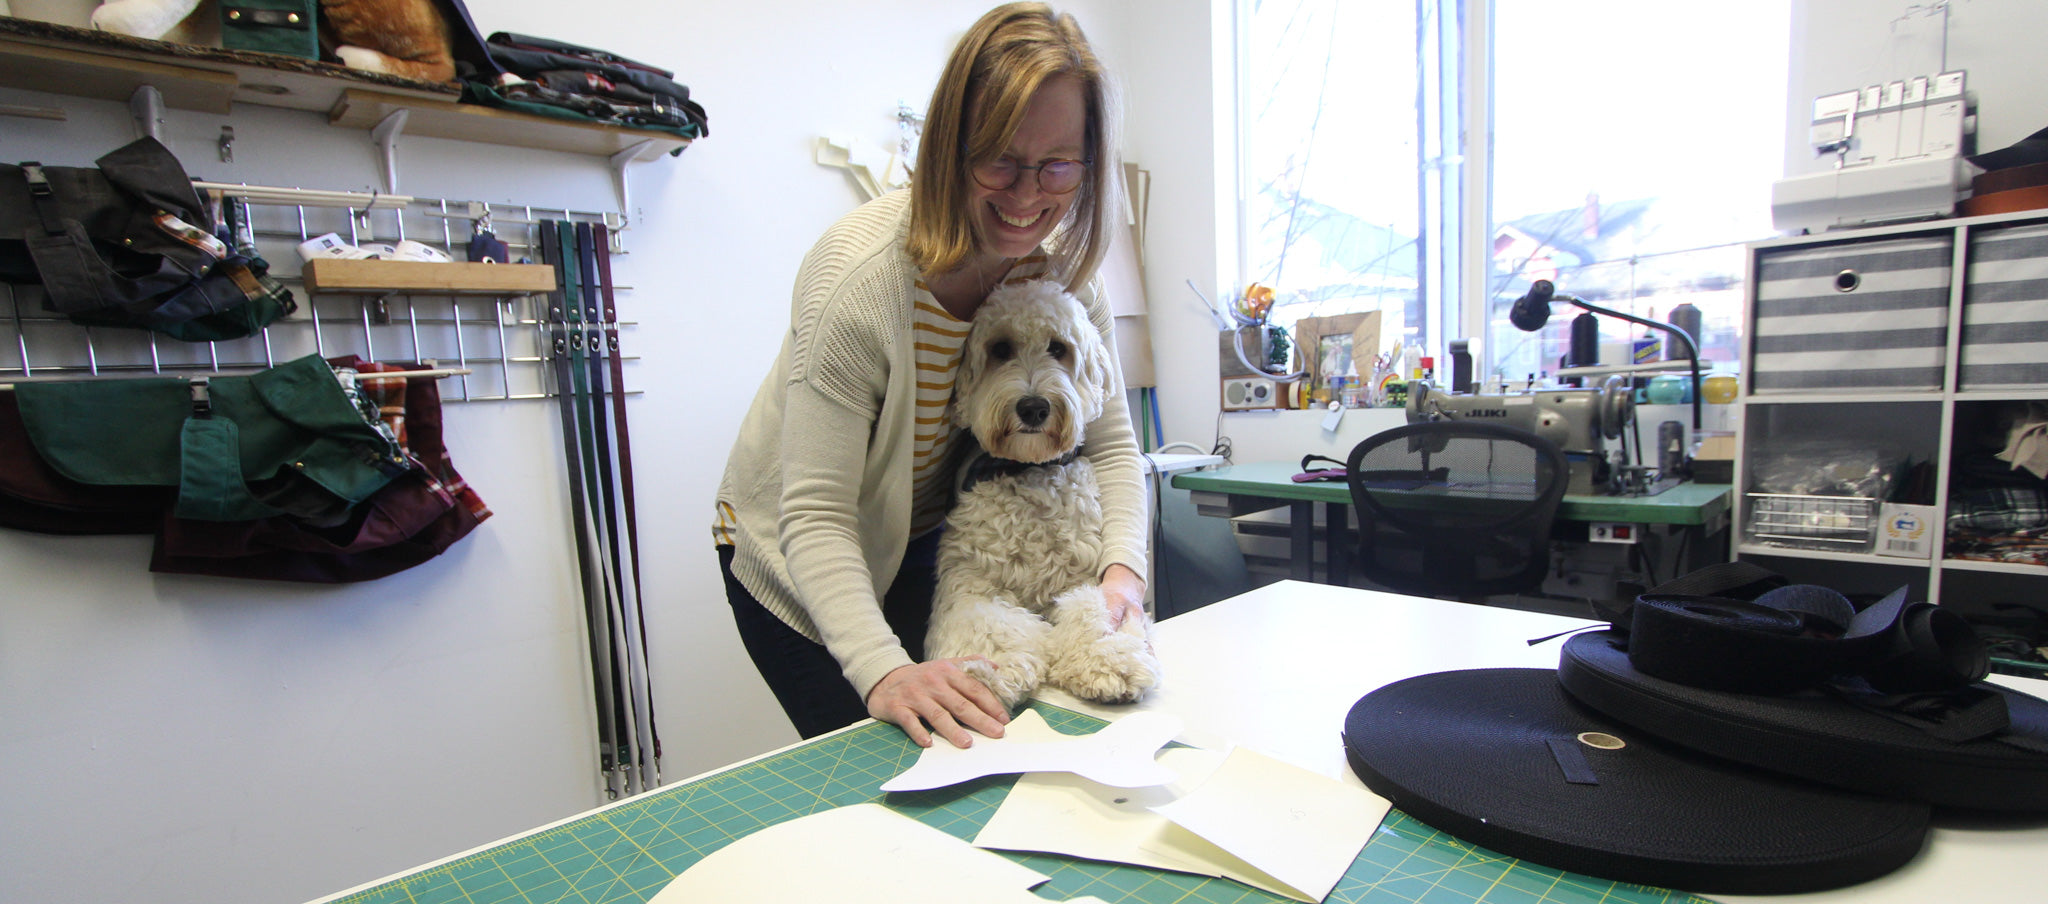 Woman standing with dog whose paws are on a sewing table